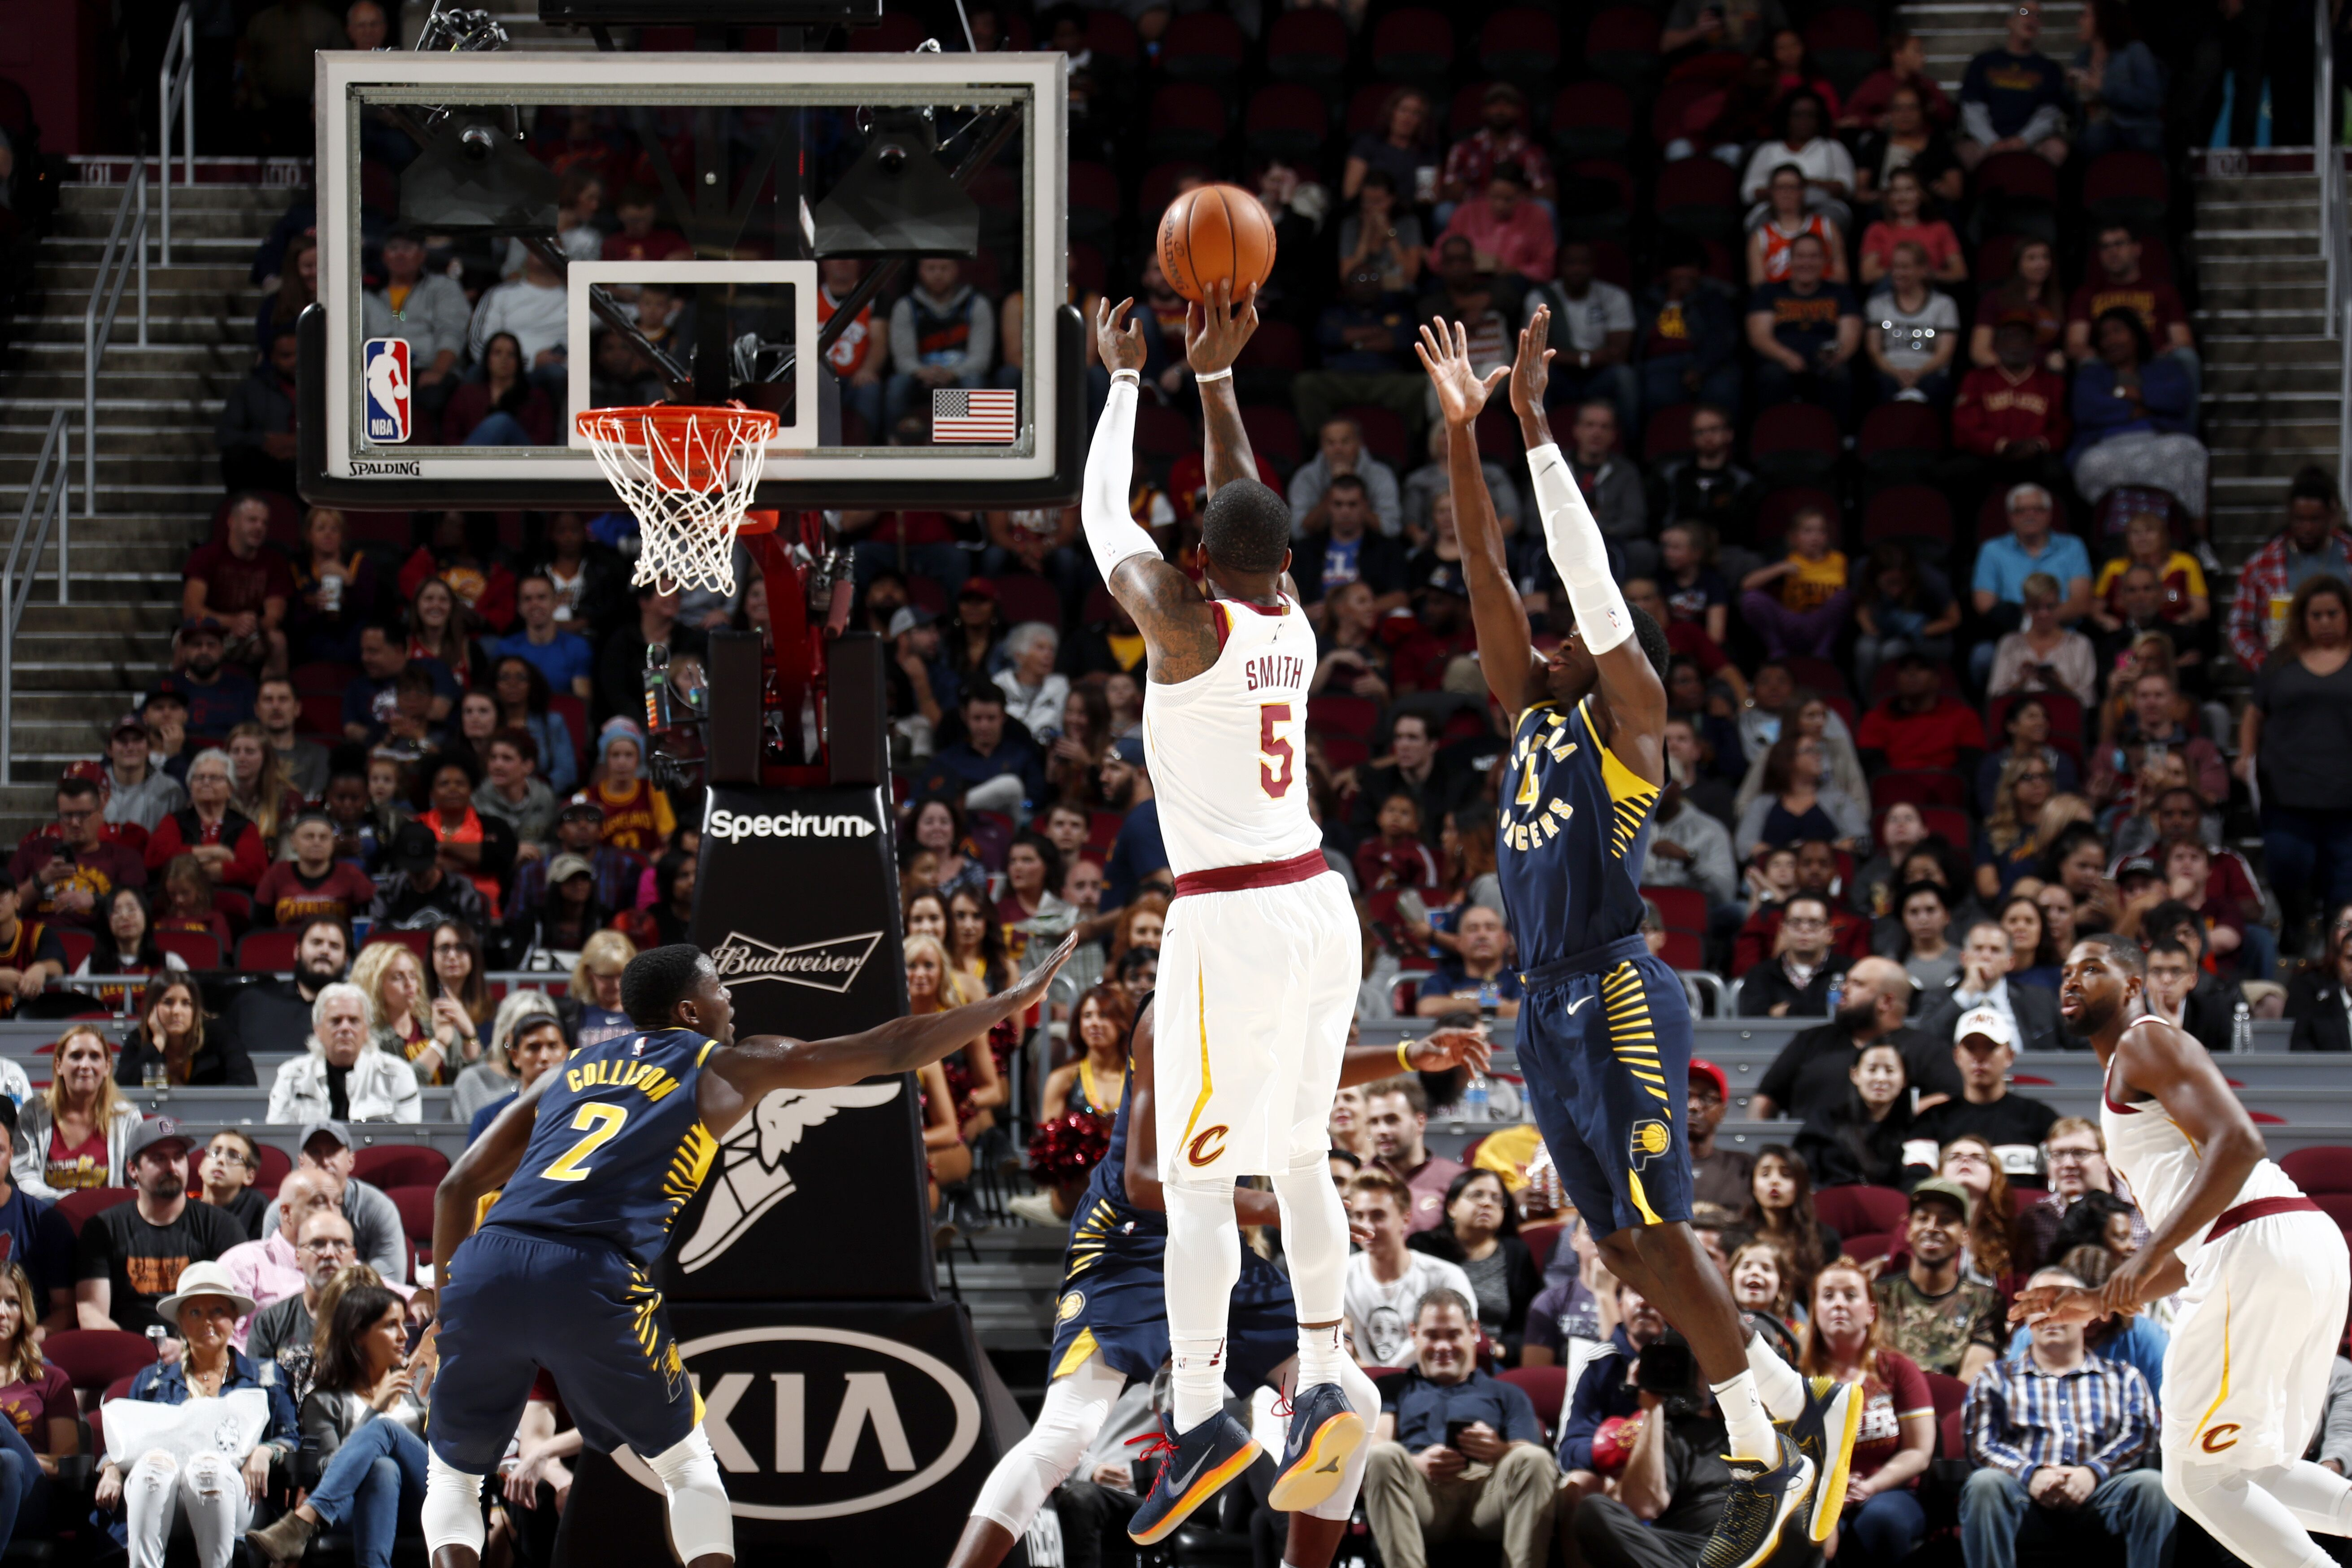 858461438-indiana-pacers-v-cleveland-cavaliers.jpg